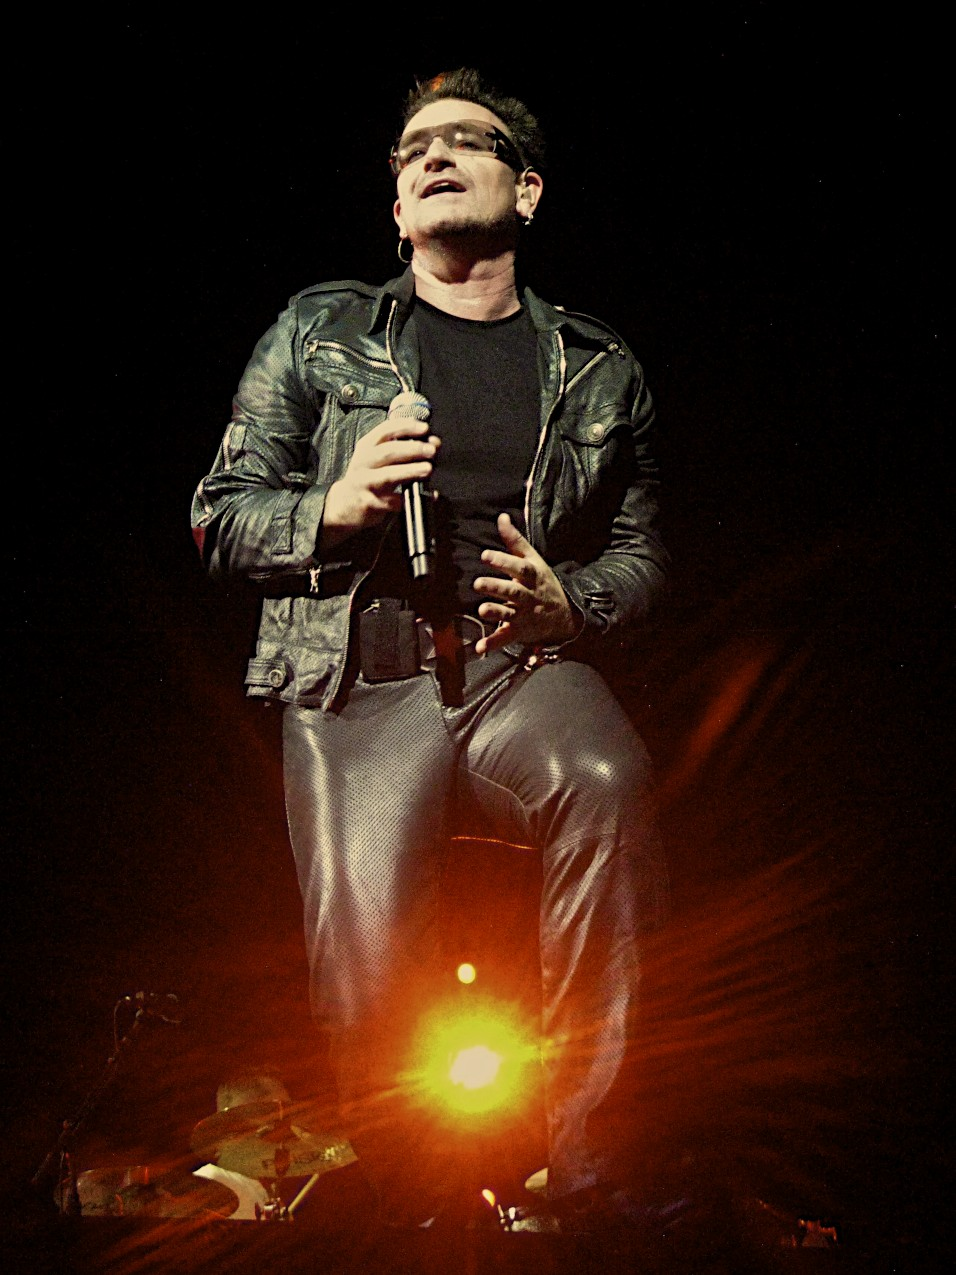 Bono/ U2TOURFANS / Nick Walker @